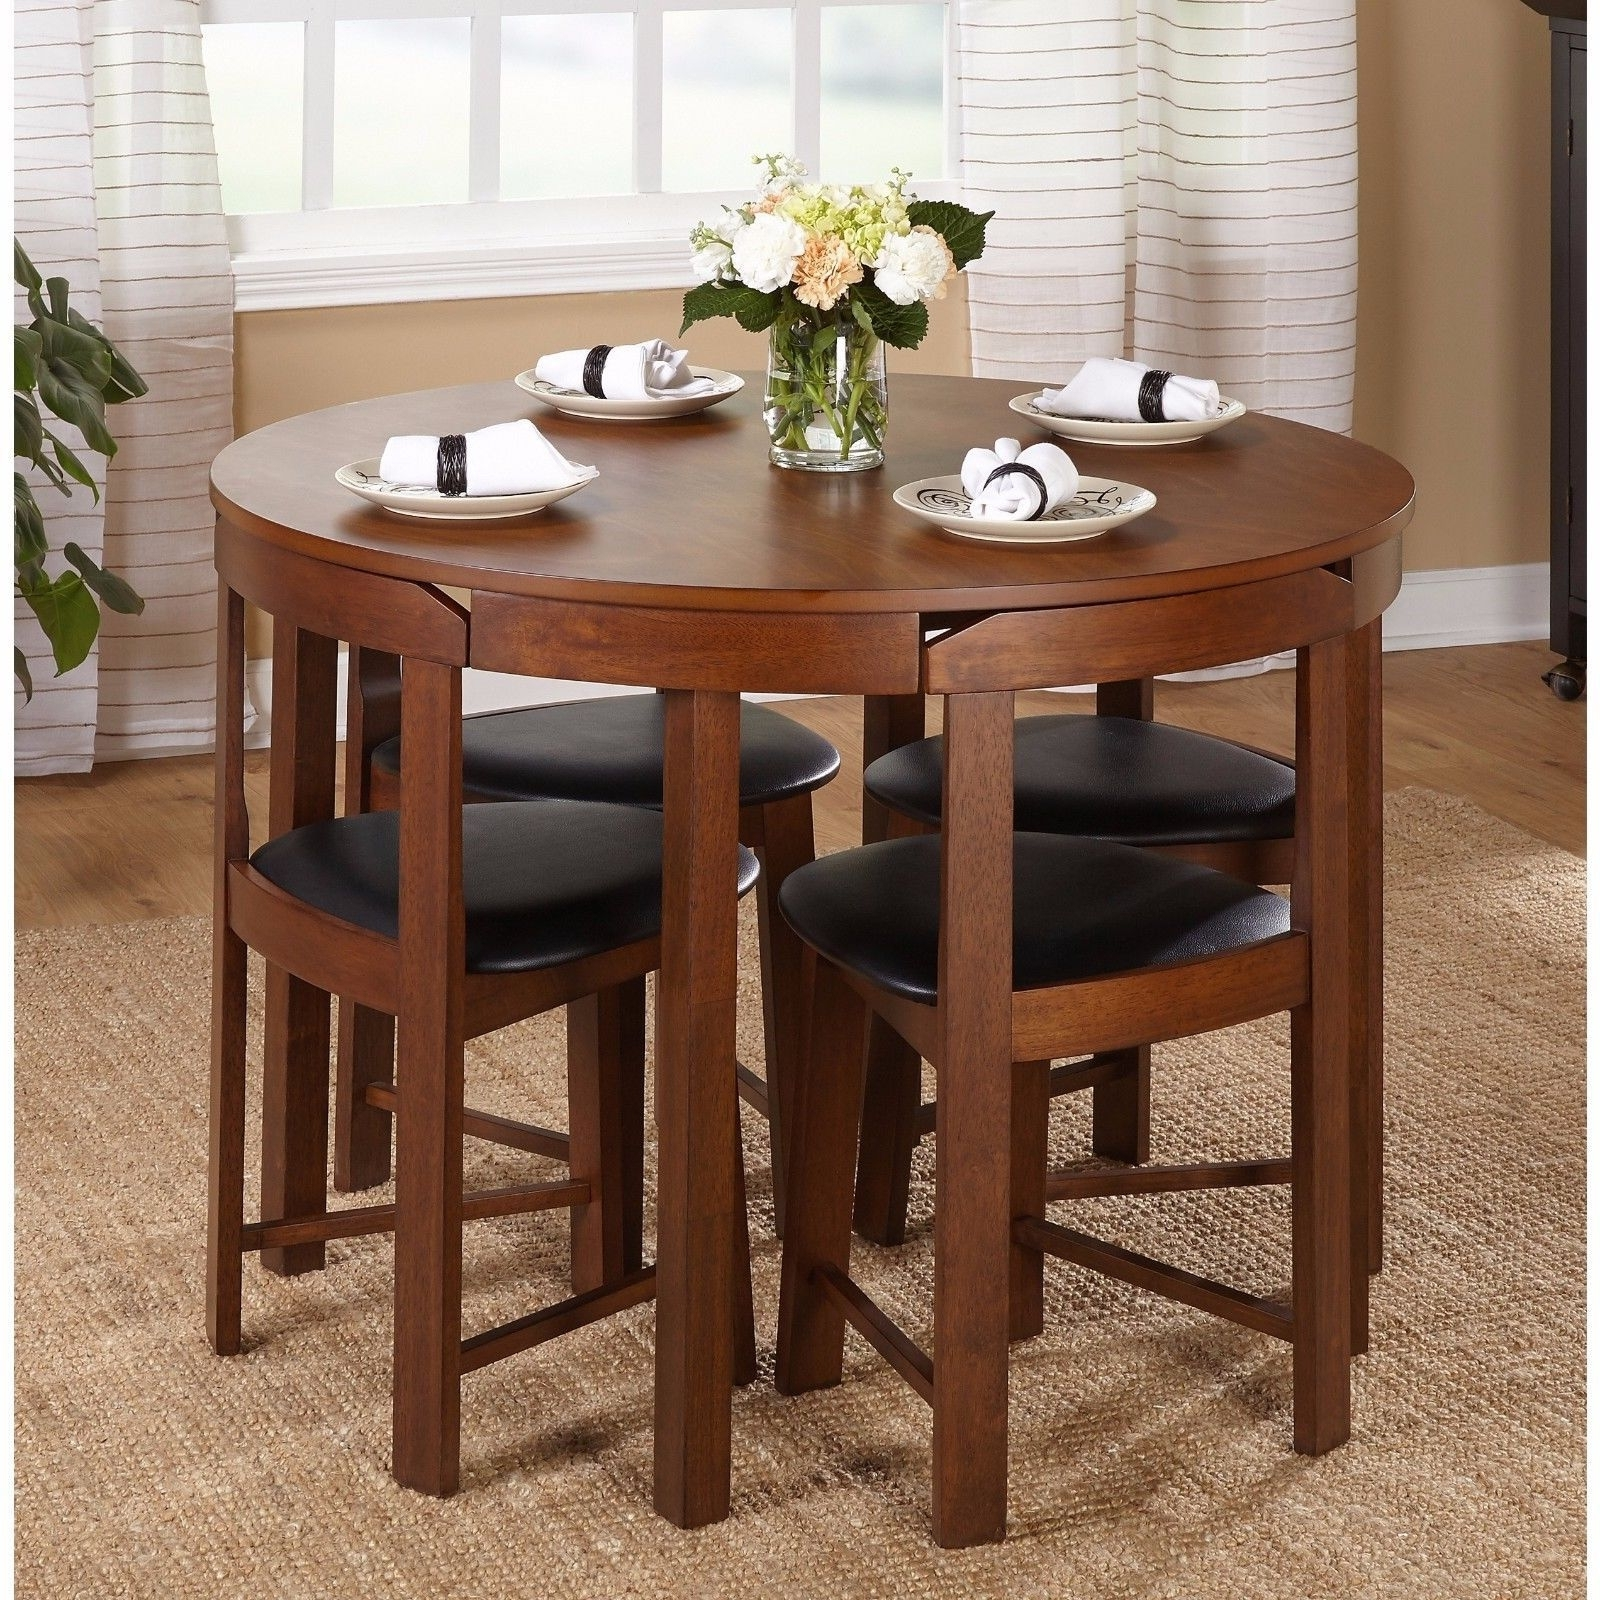 Dining Table Set For 4 Small Spaces Round Kitchen Table And Chairs For Popular Compact Dining Tables (View 6 of 25)